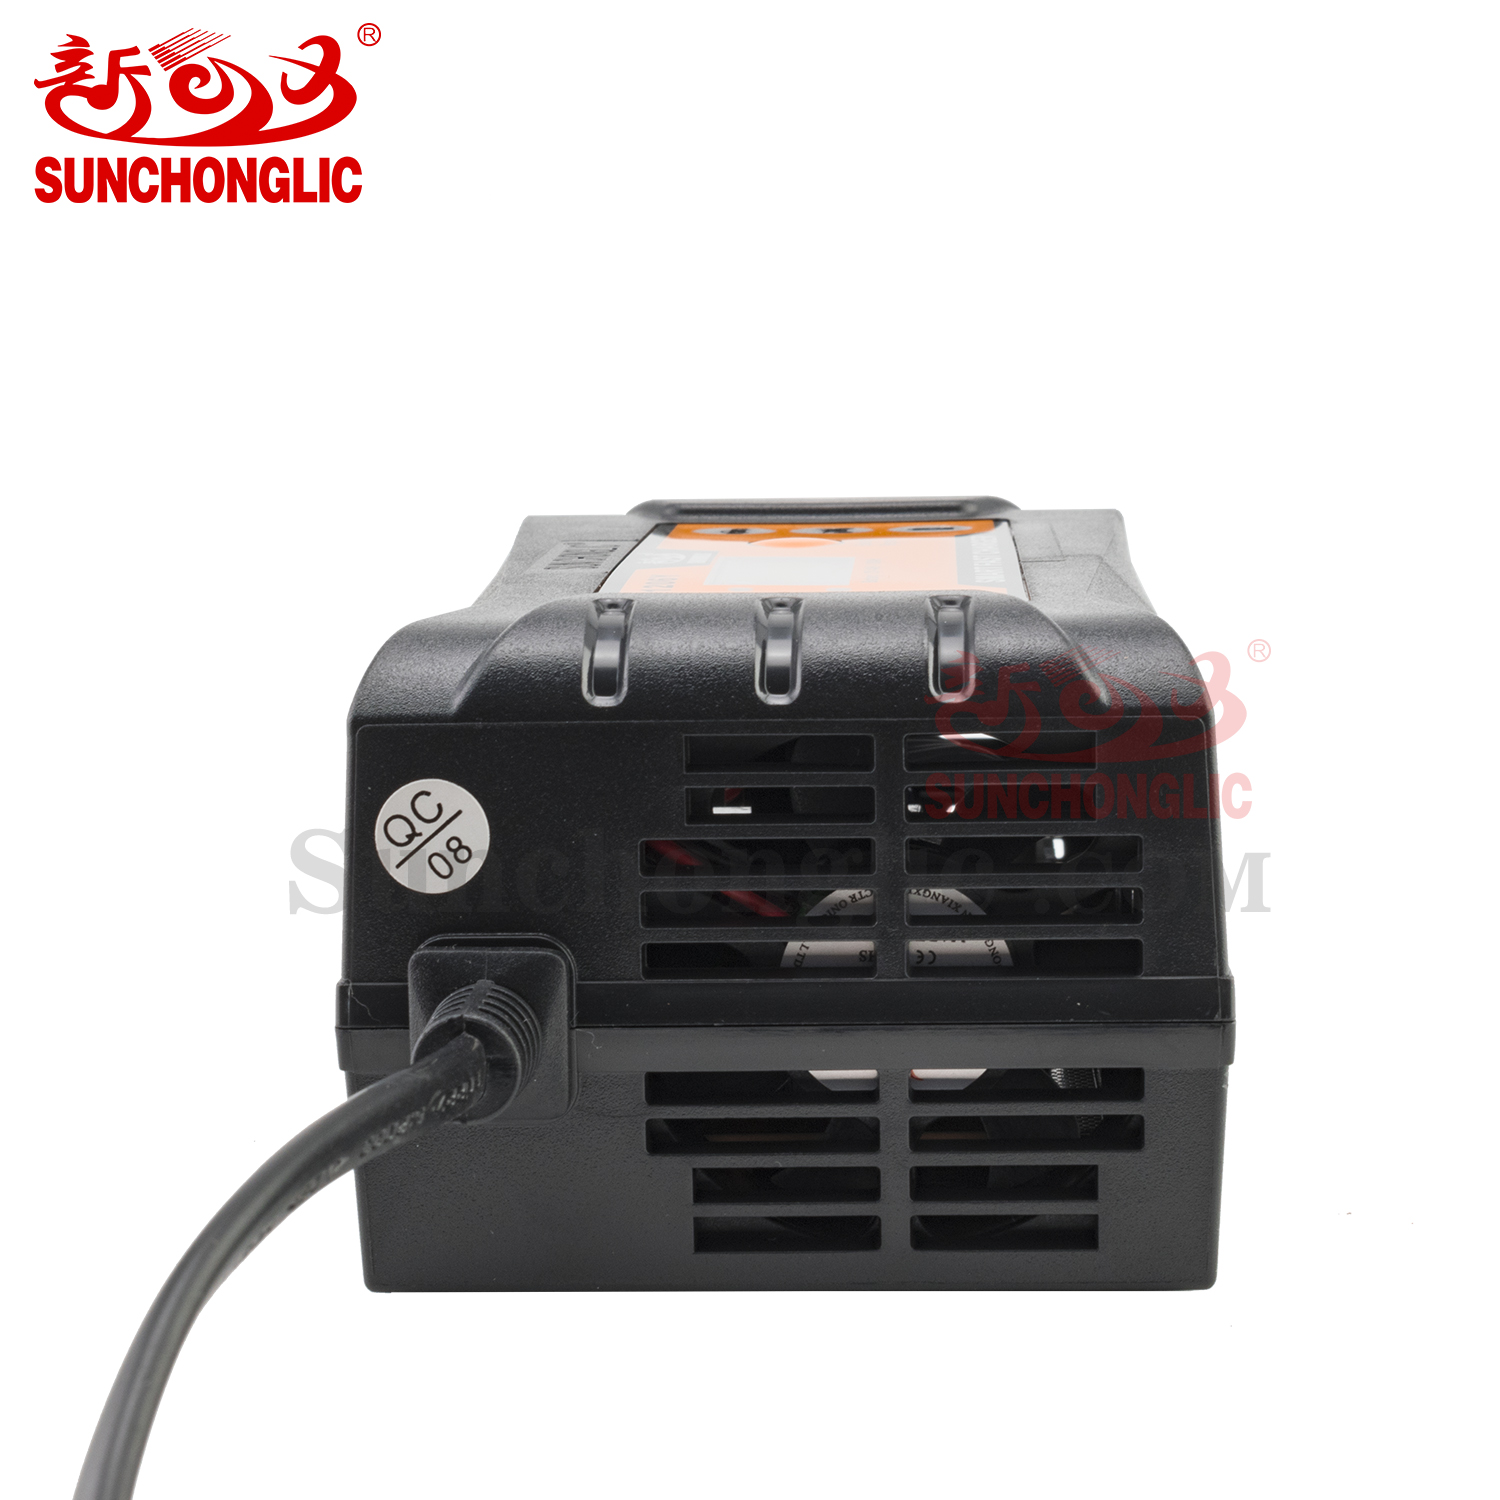 AGM/GEL Battery Charger - FON-1206Y